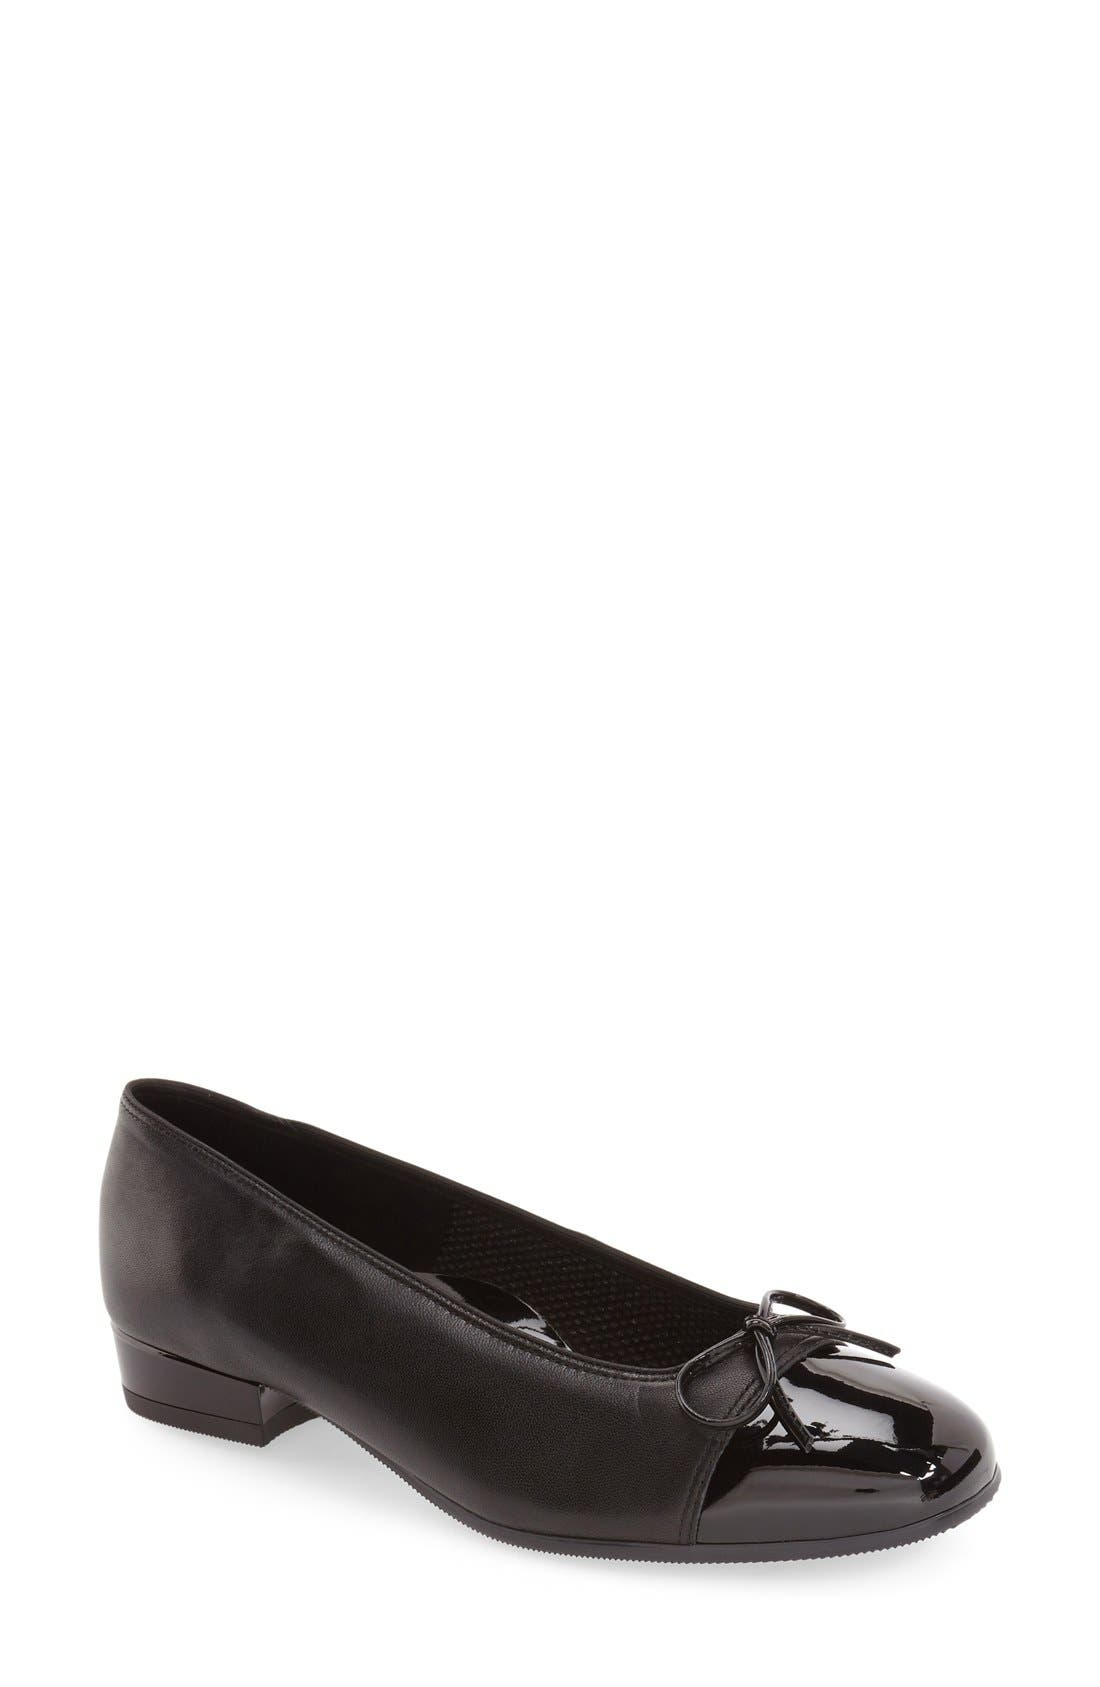 'Bel' Cap Toe Pump,                         Main,                         color, Black Leather